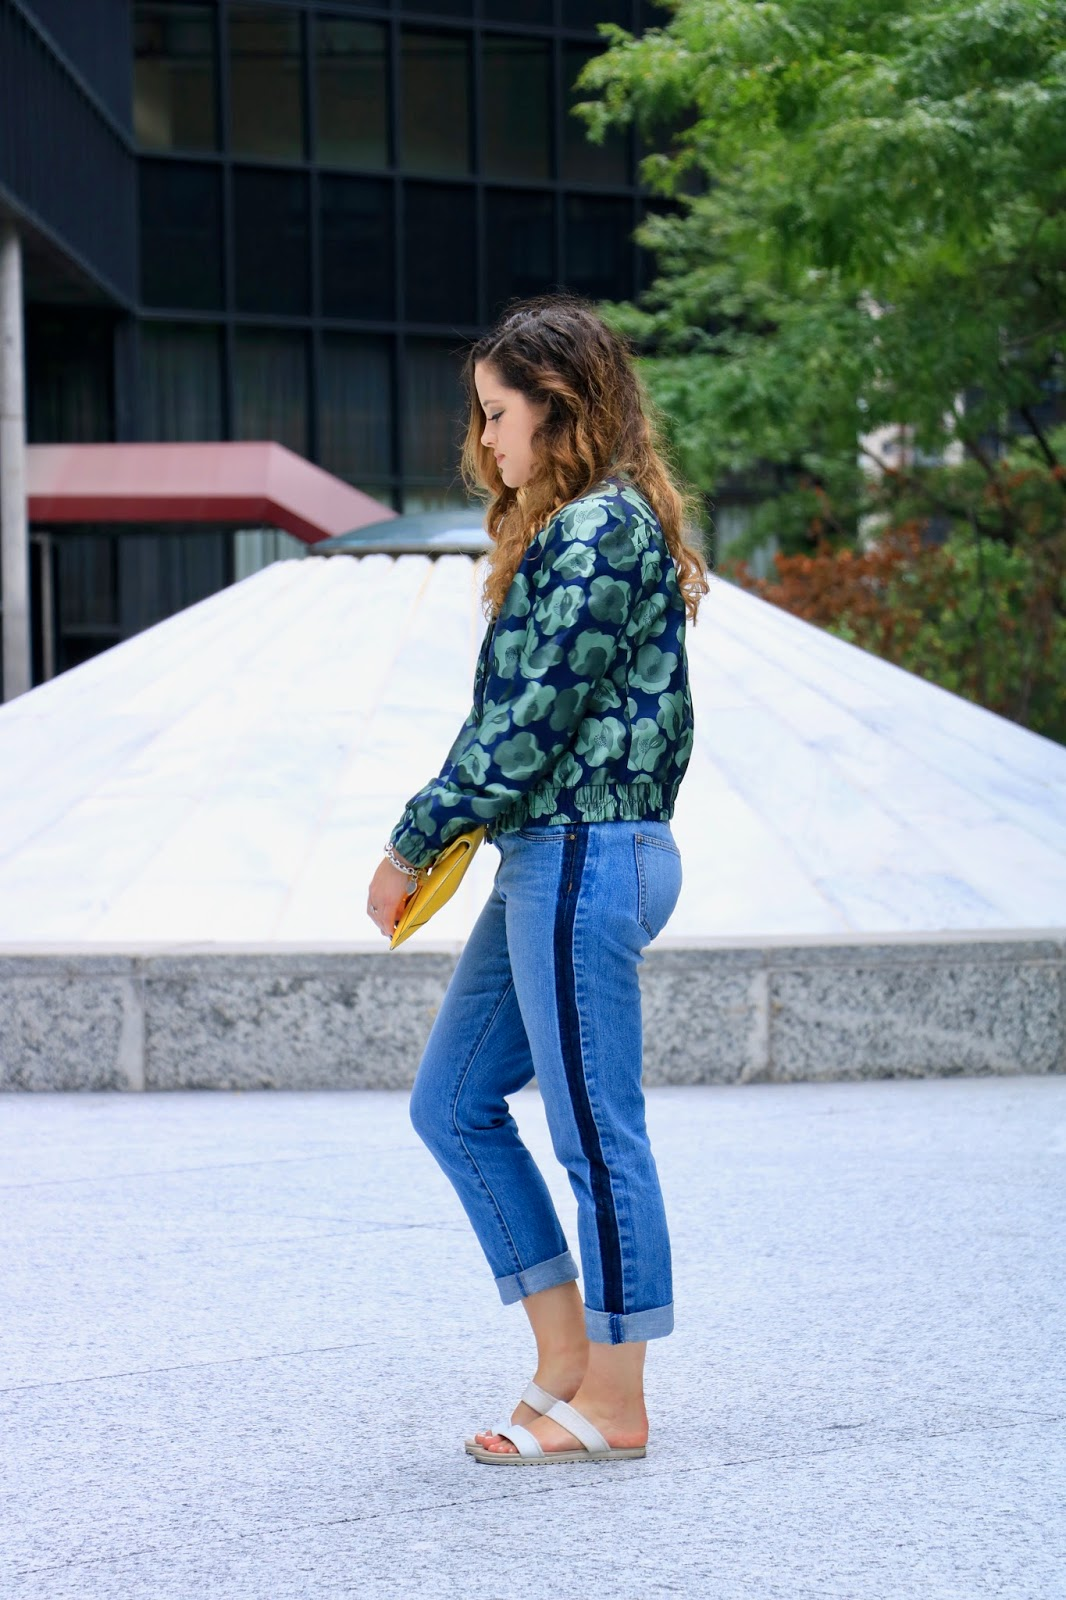 NYC Fashion blogger Kathleen Harper wearing embellished denim jeans